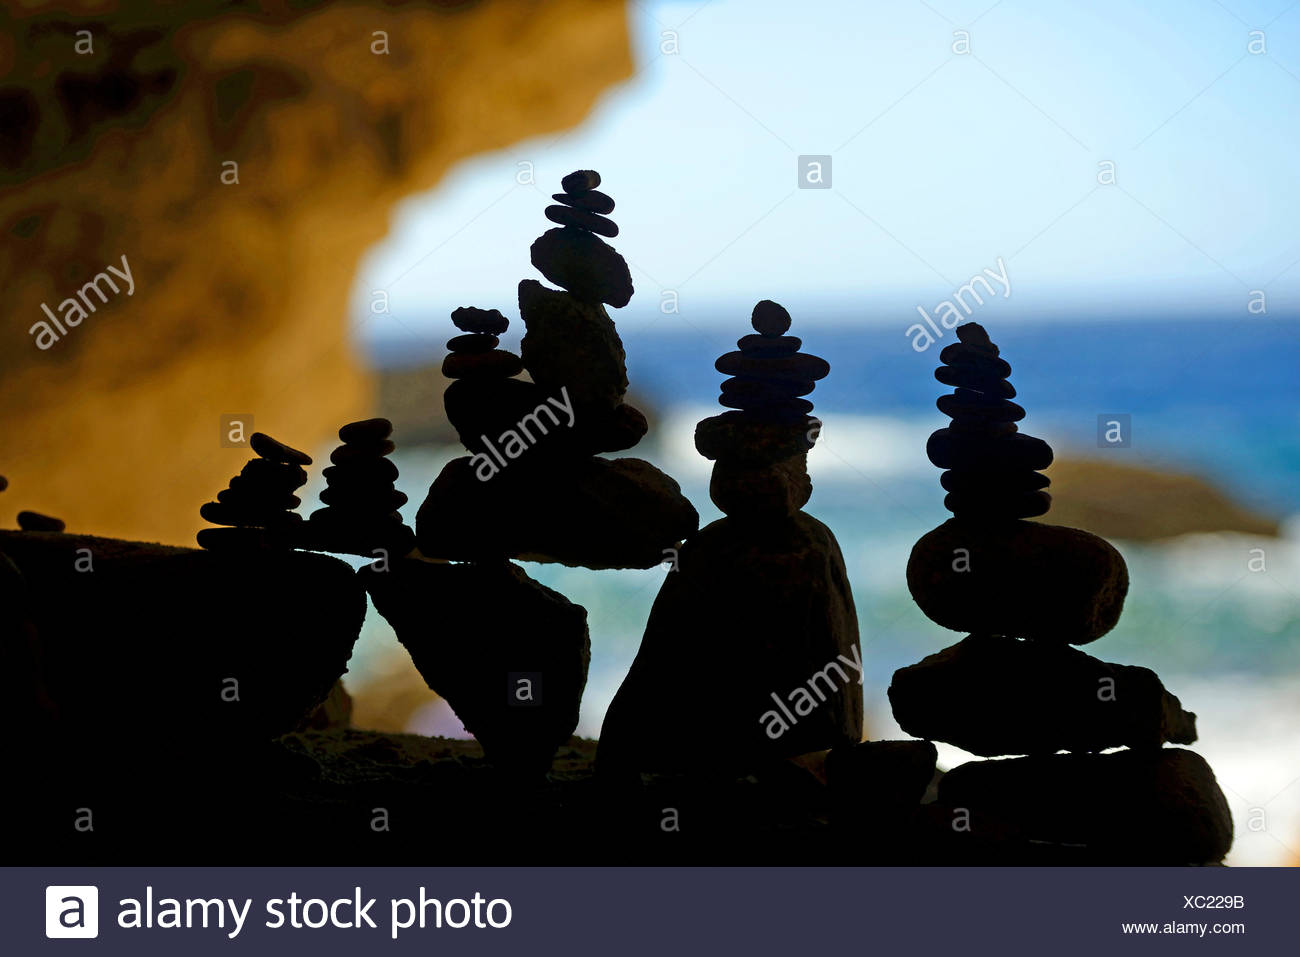 cairns in the shadow at the rocky coast, France, Corsica, Bonifacio - Stock Image